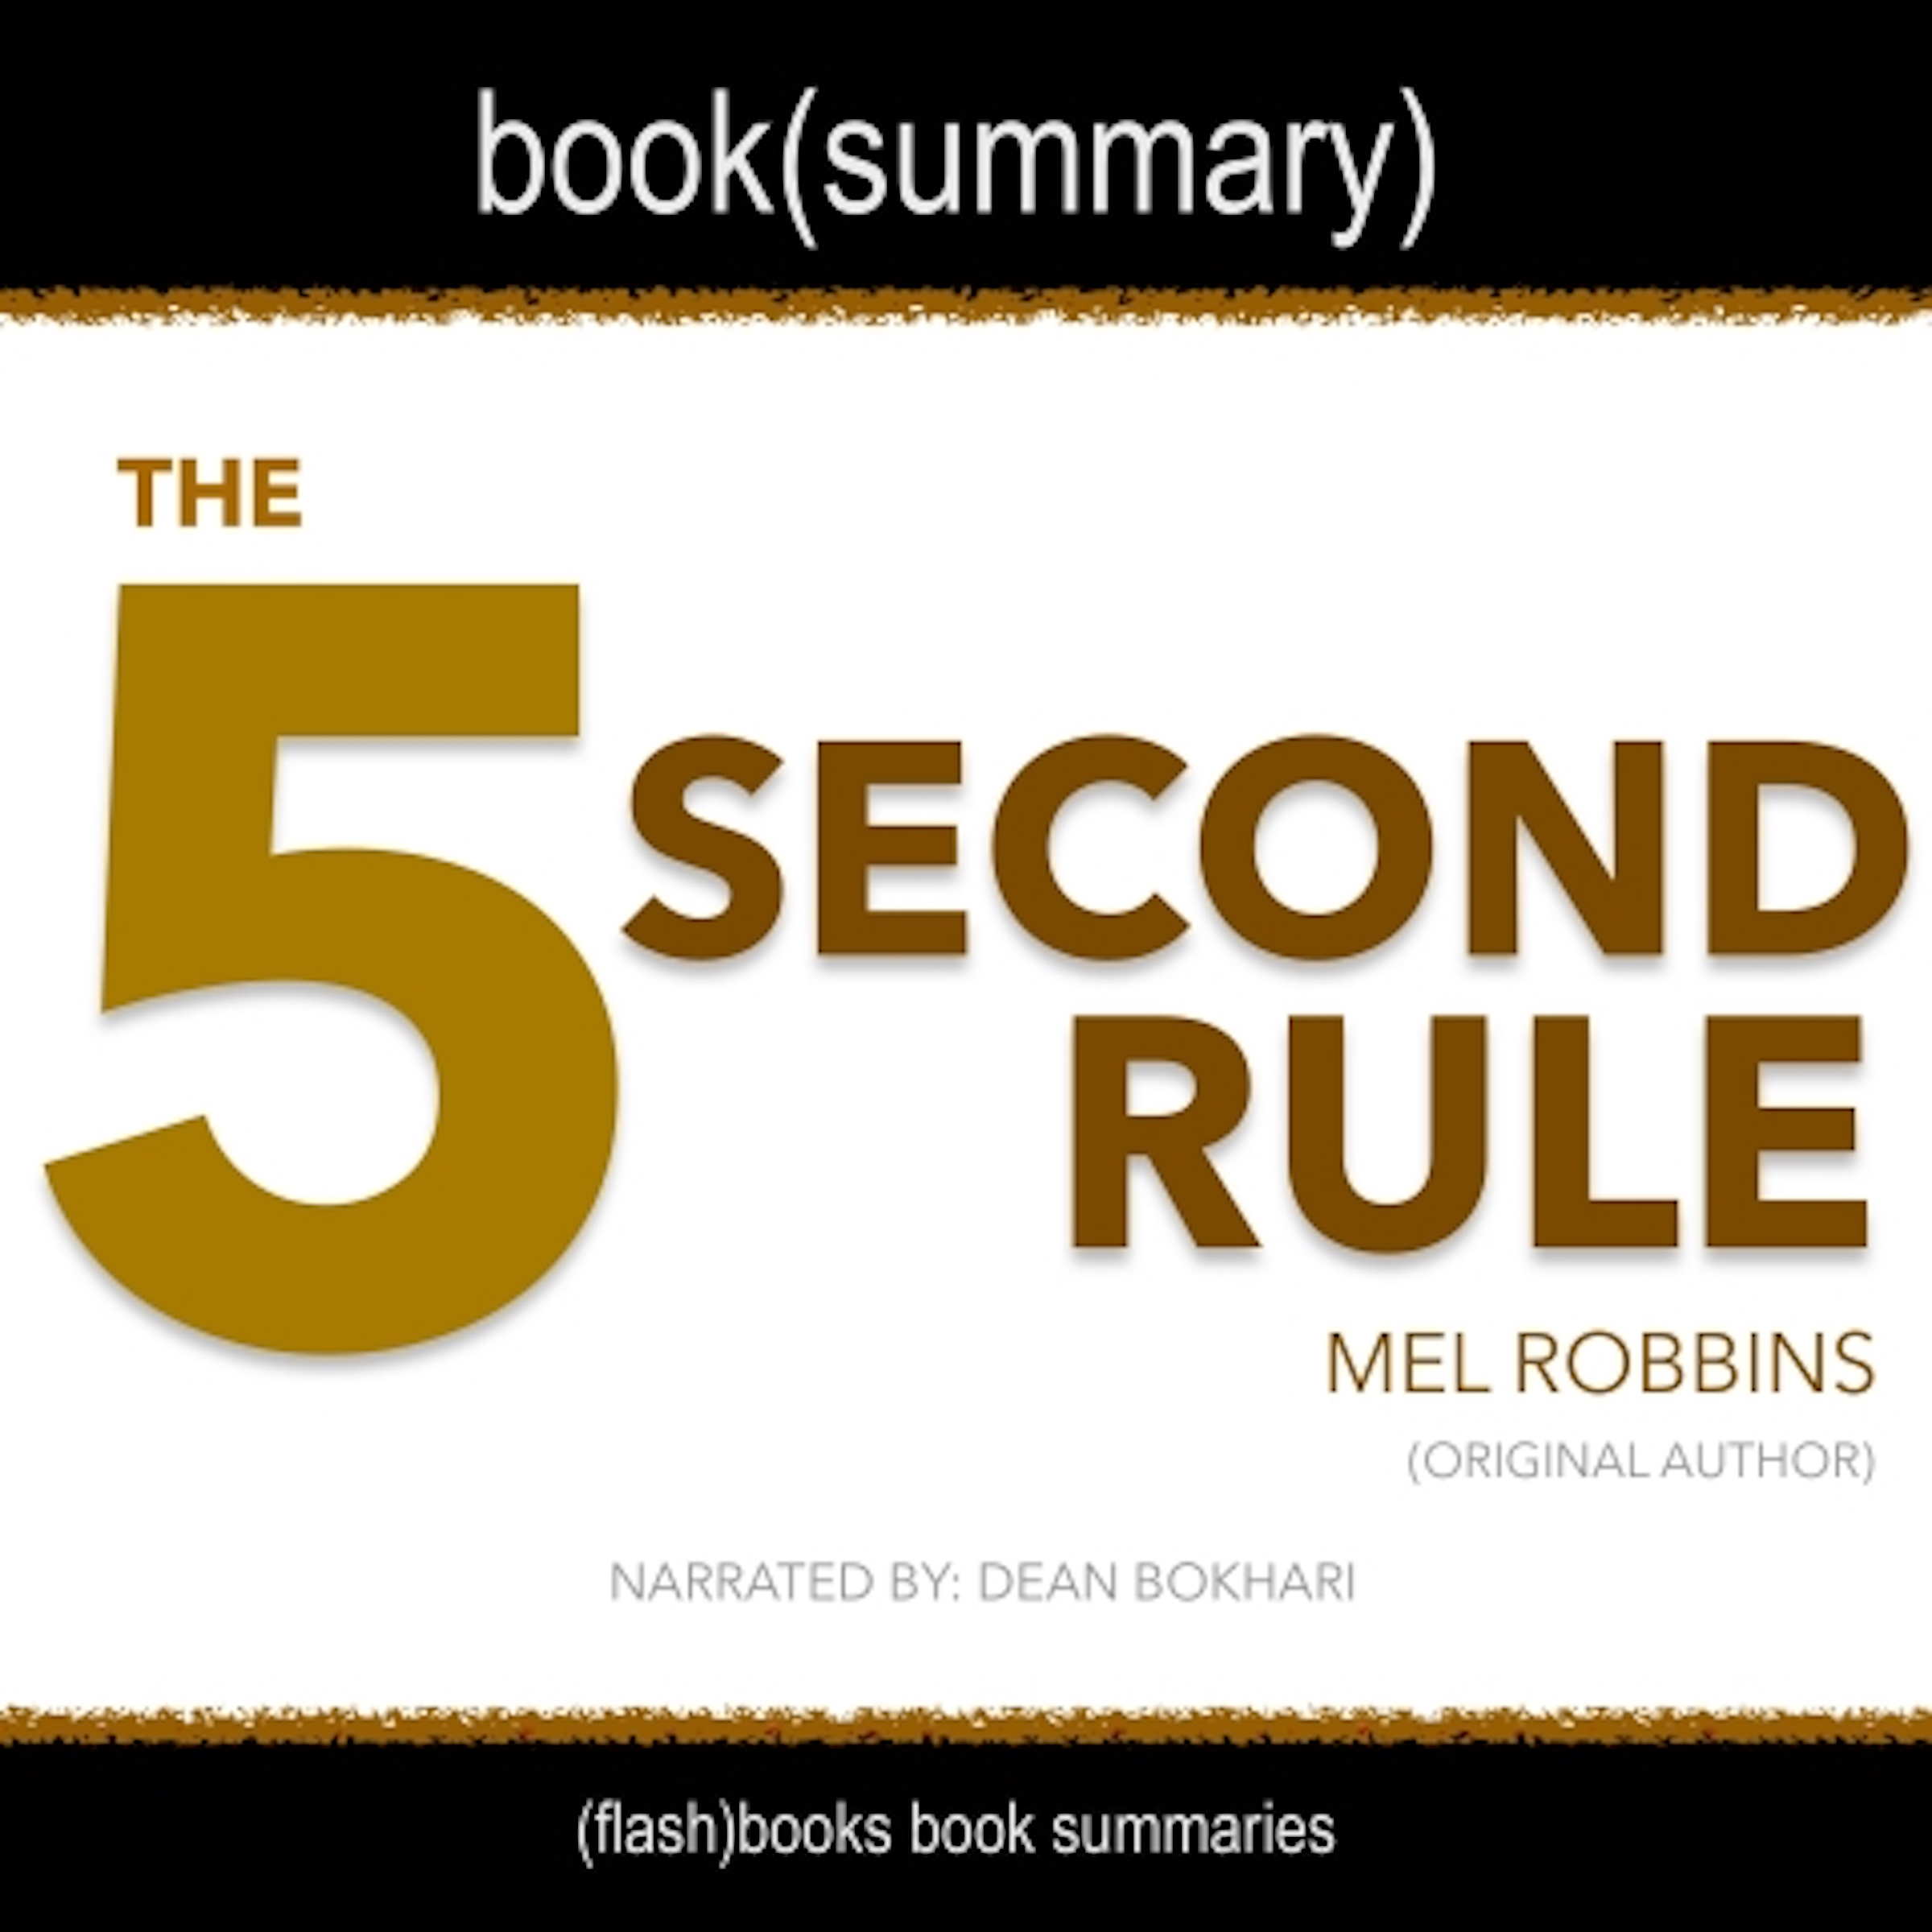 The_5_Second_Rule_By_Mel_Robbins_Audiobook_Summary